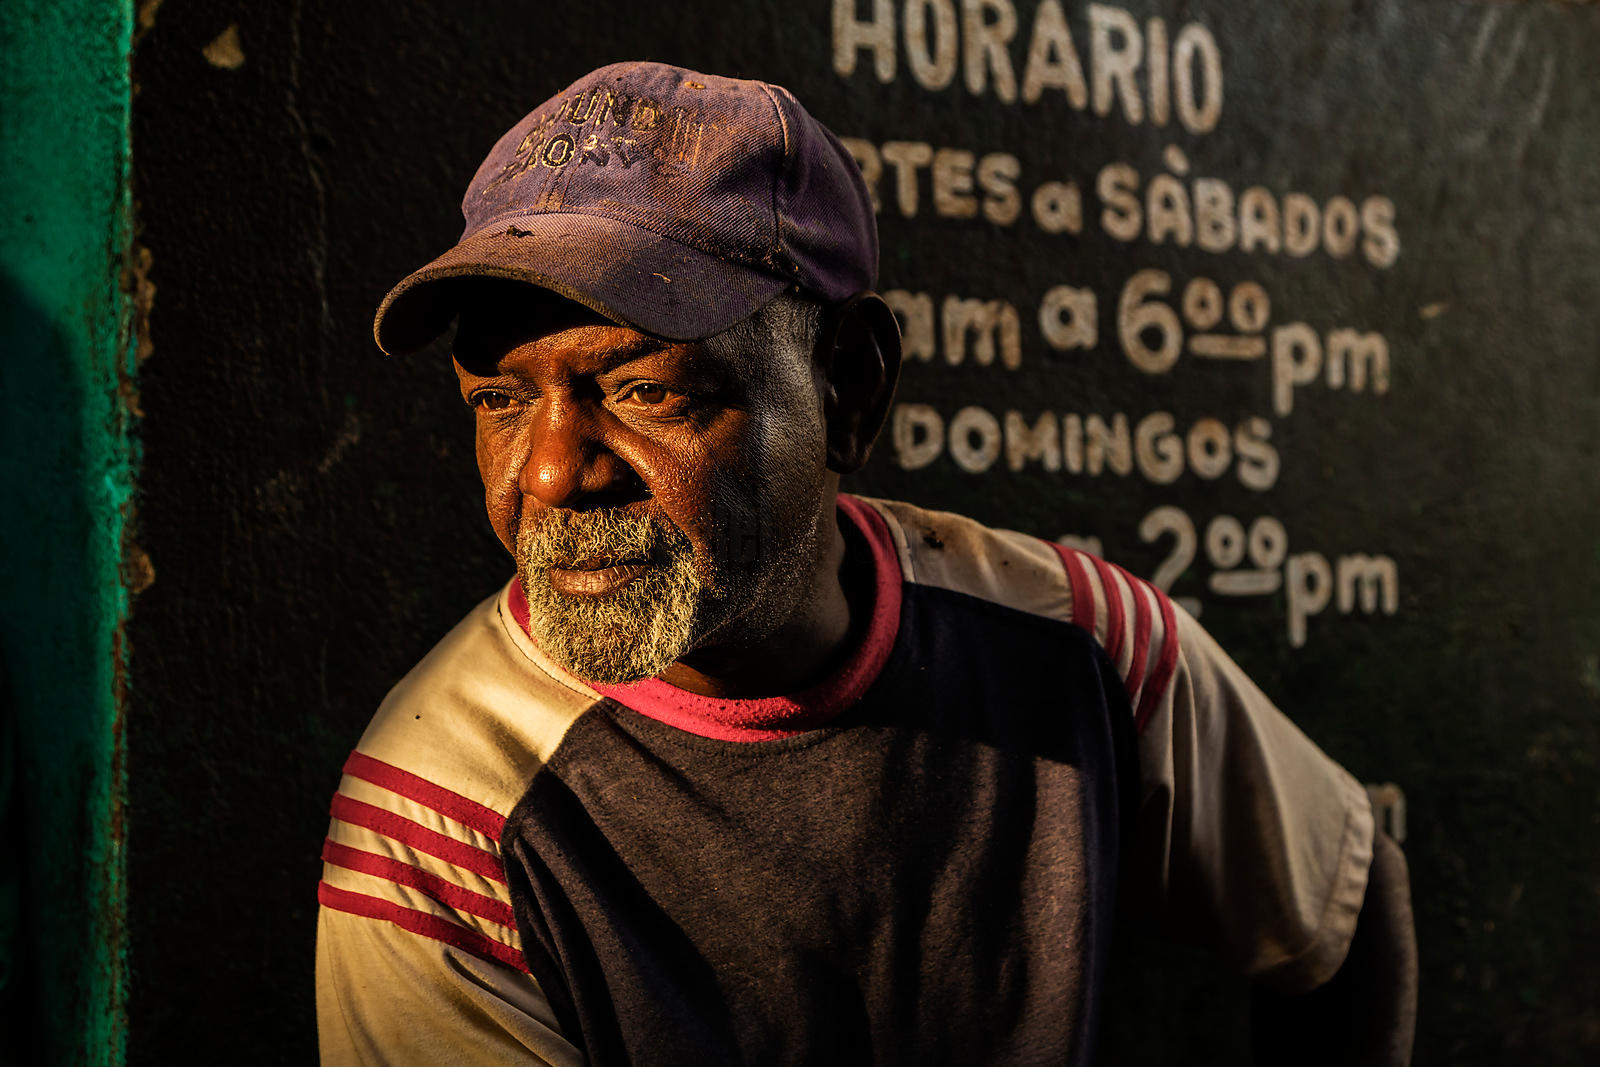 Portrait of a Worker at a Havana Vegetable Market